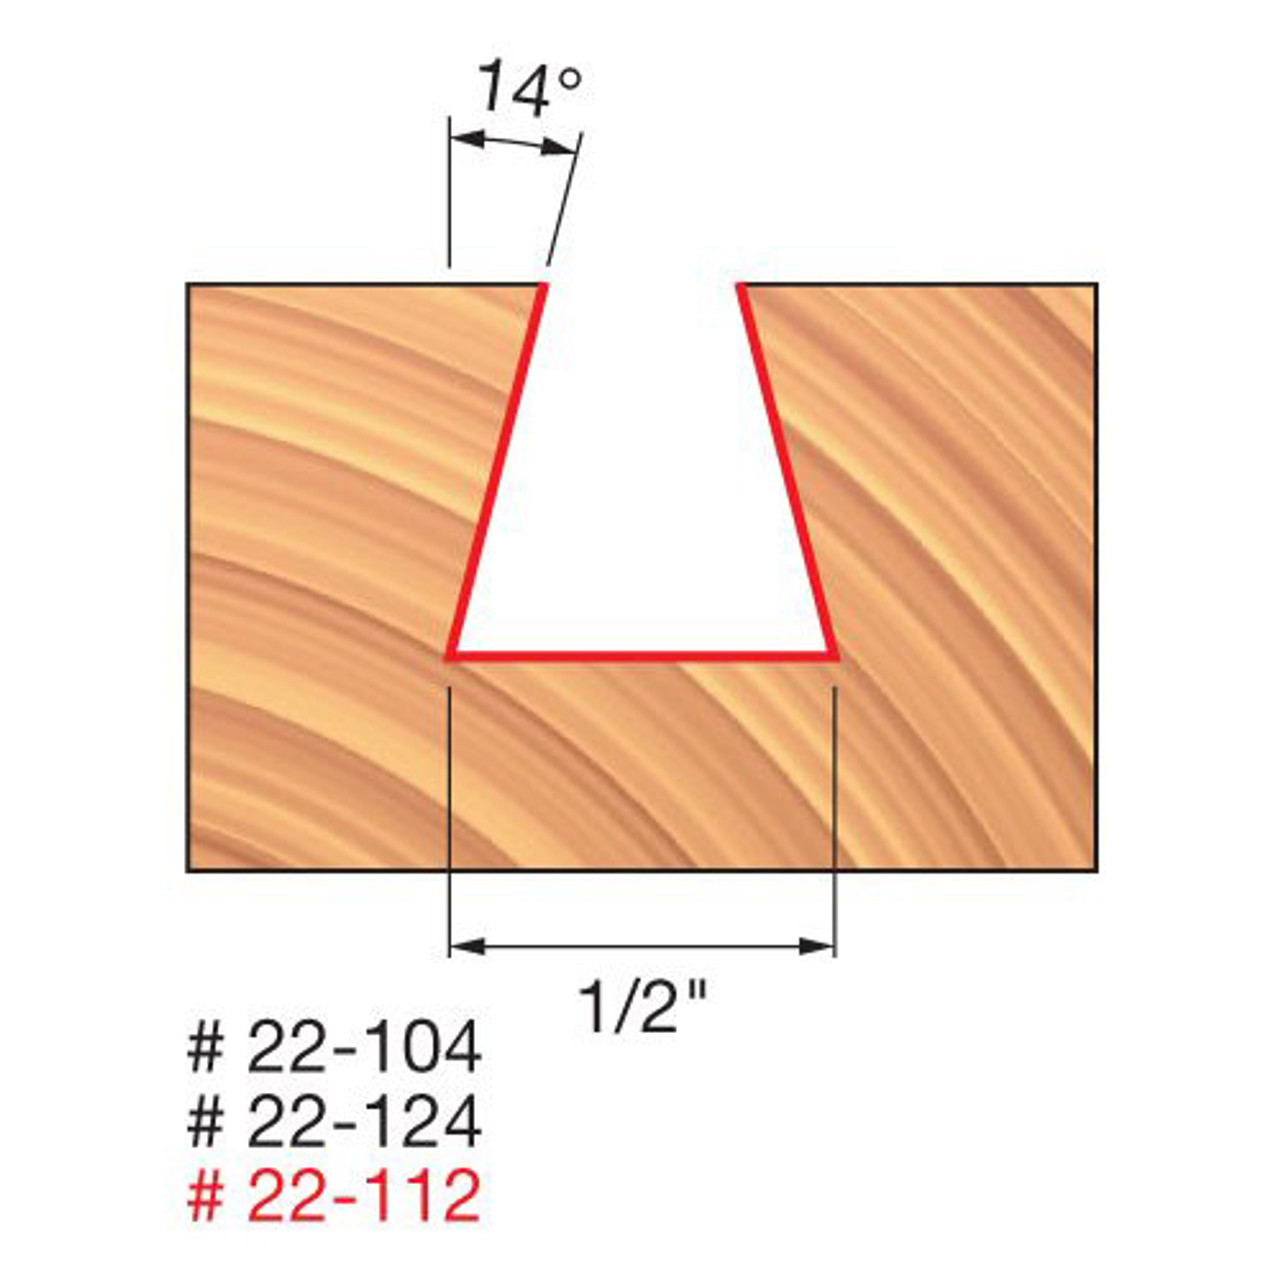 """Freud 1/2"""" Dovetail Router Bit, 14 Deg. Angle, 1/2"""" Carbide Height, 1/4"""" Shank, 1/2"""" Overall Diameter, 1-7/8"""" Overall"""